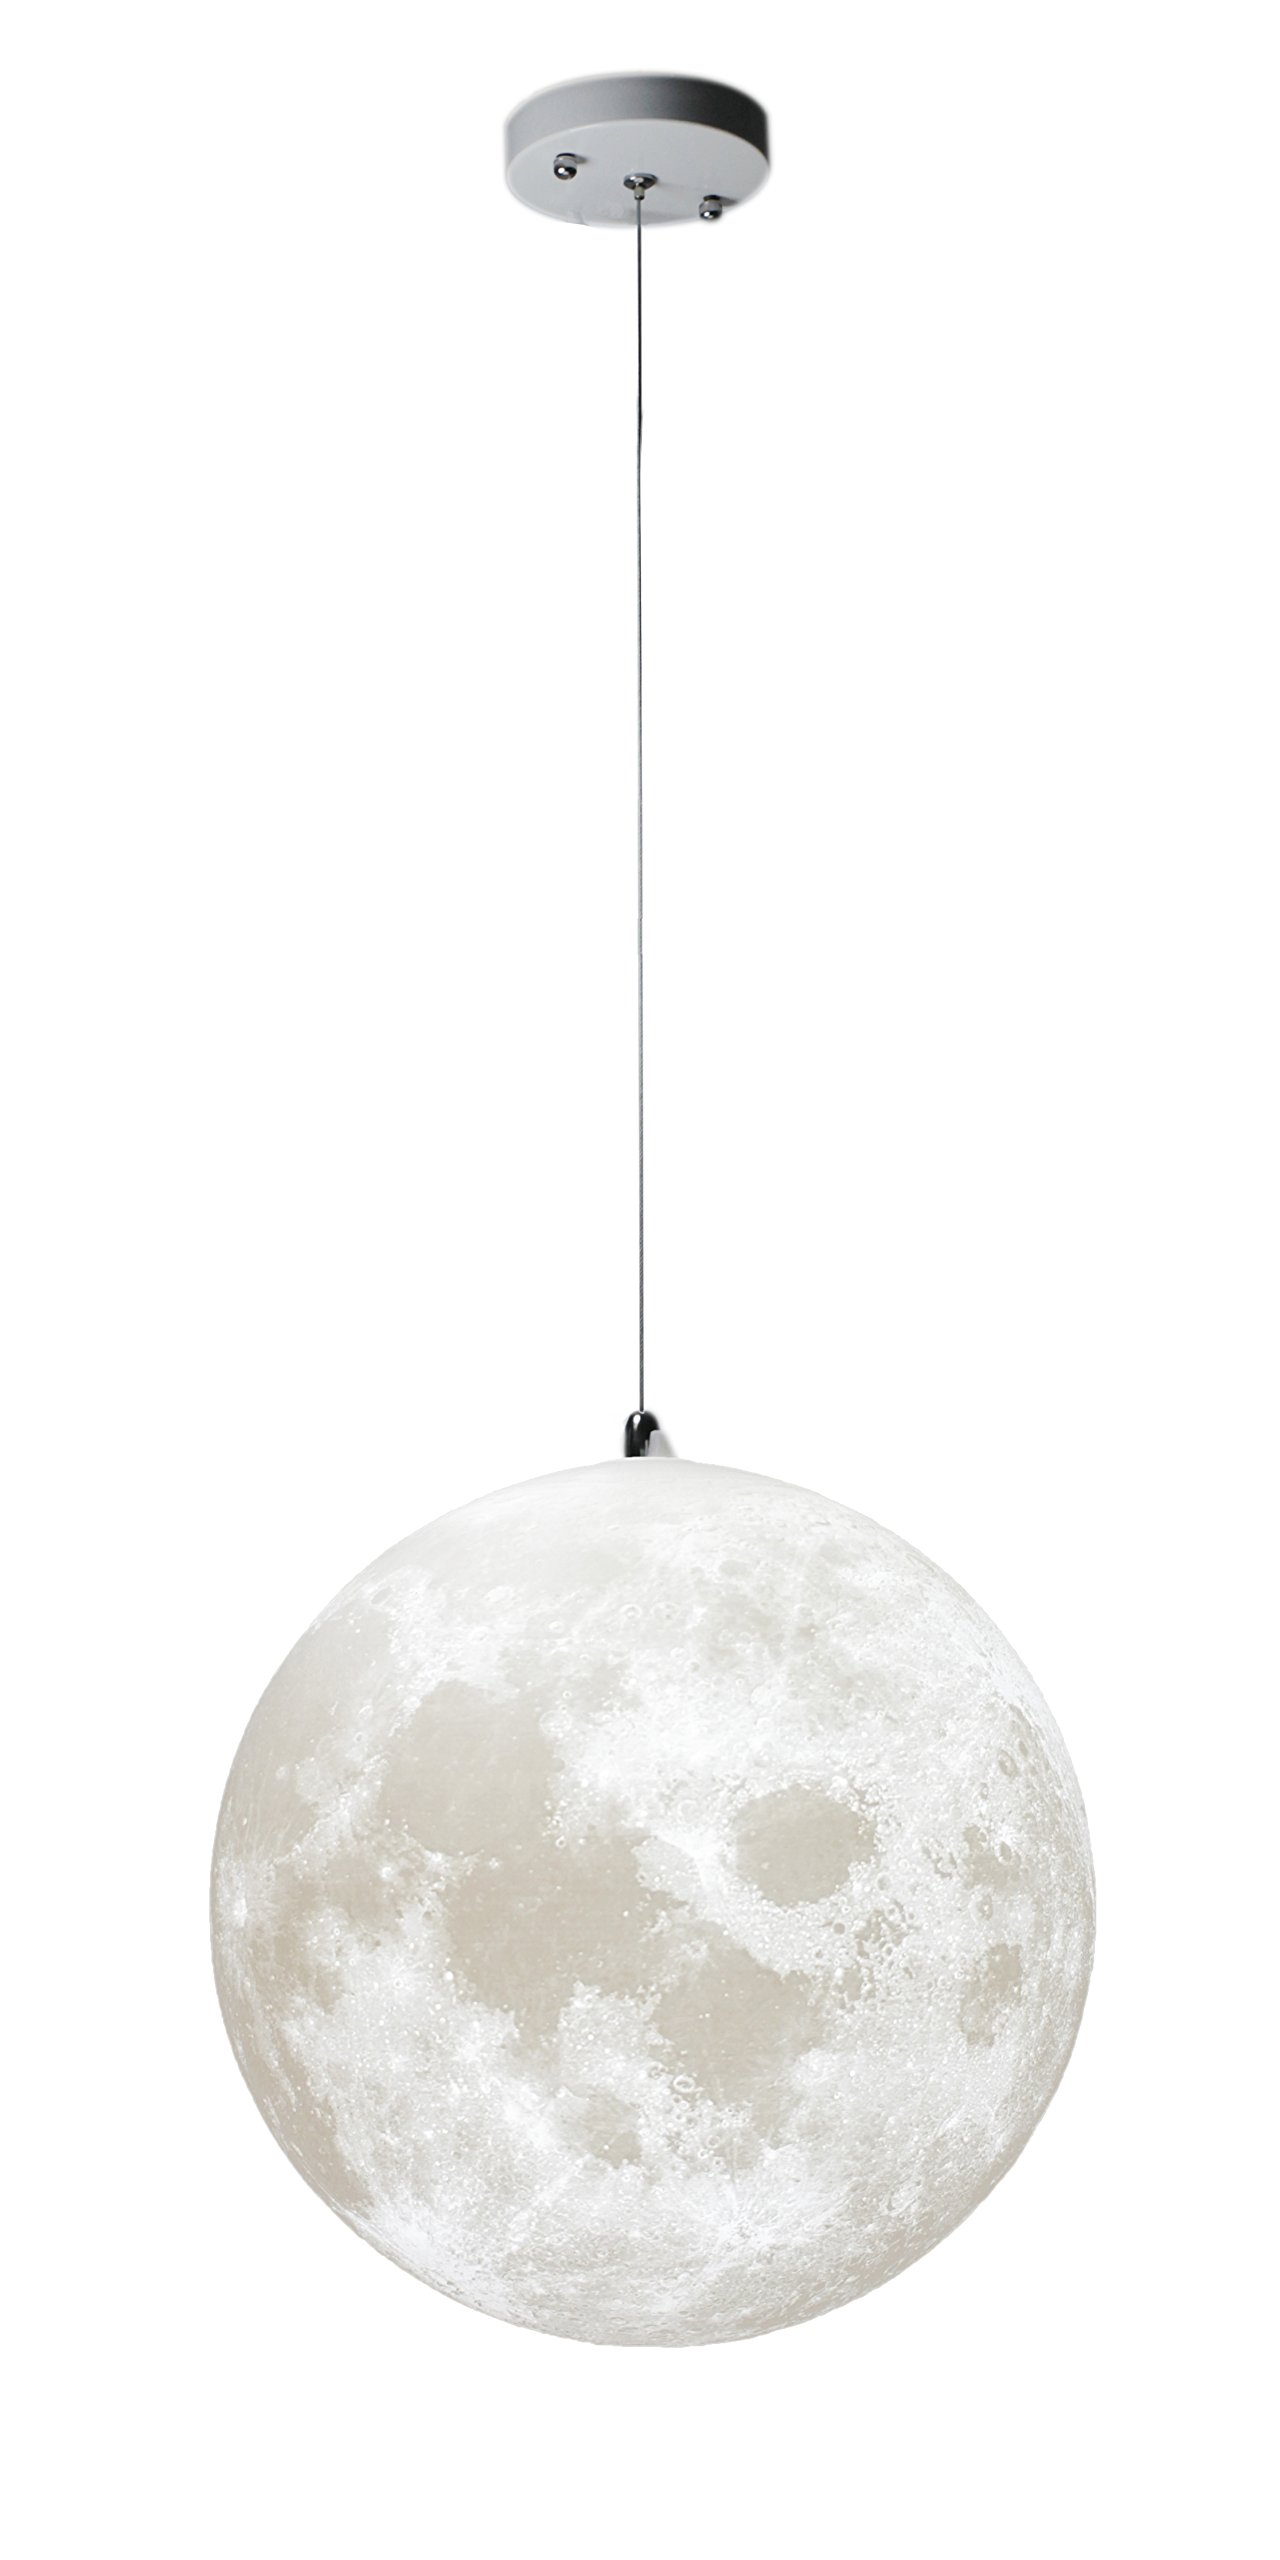 KUNGKEN Moon Chandelier LED 3D Printing Moon Ceiling Lamp Warm and Cool Lighting Bulbs Included for Kitchen Restaurant Cafe Hotel Foyer Decoration 12IN